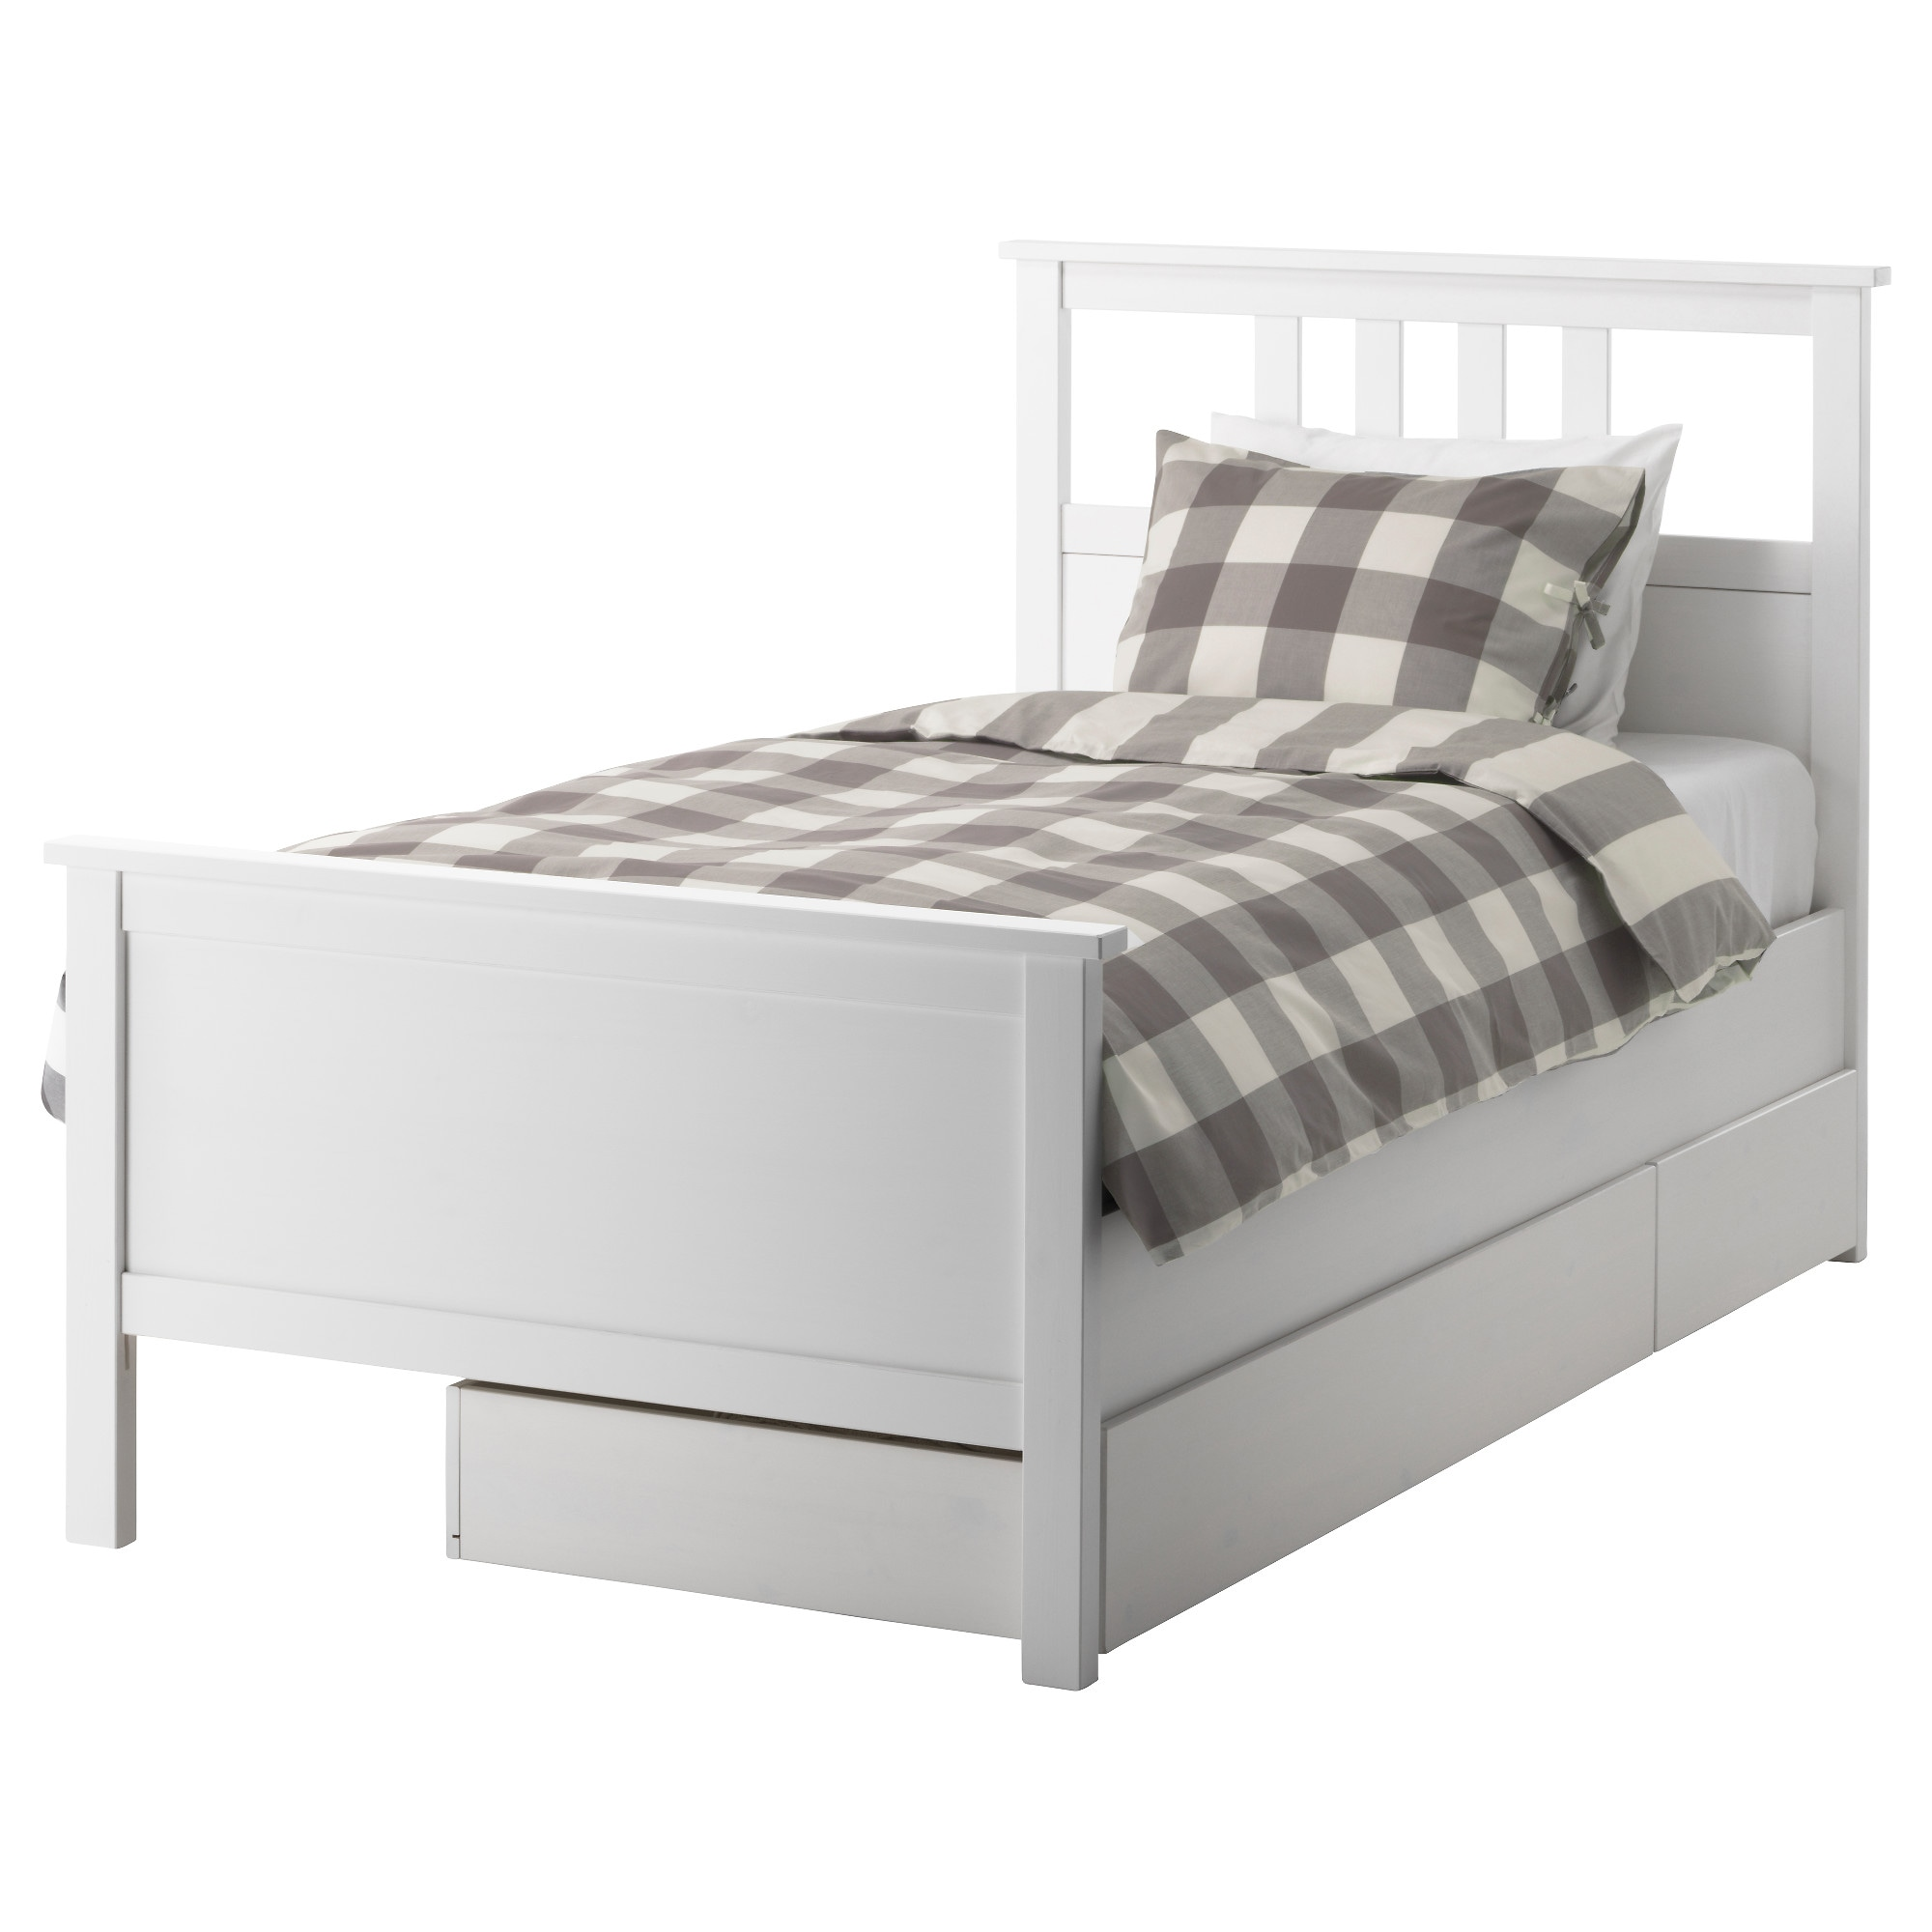 Twin Beds Frames IKEA